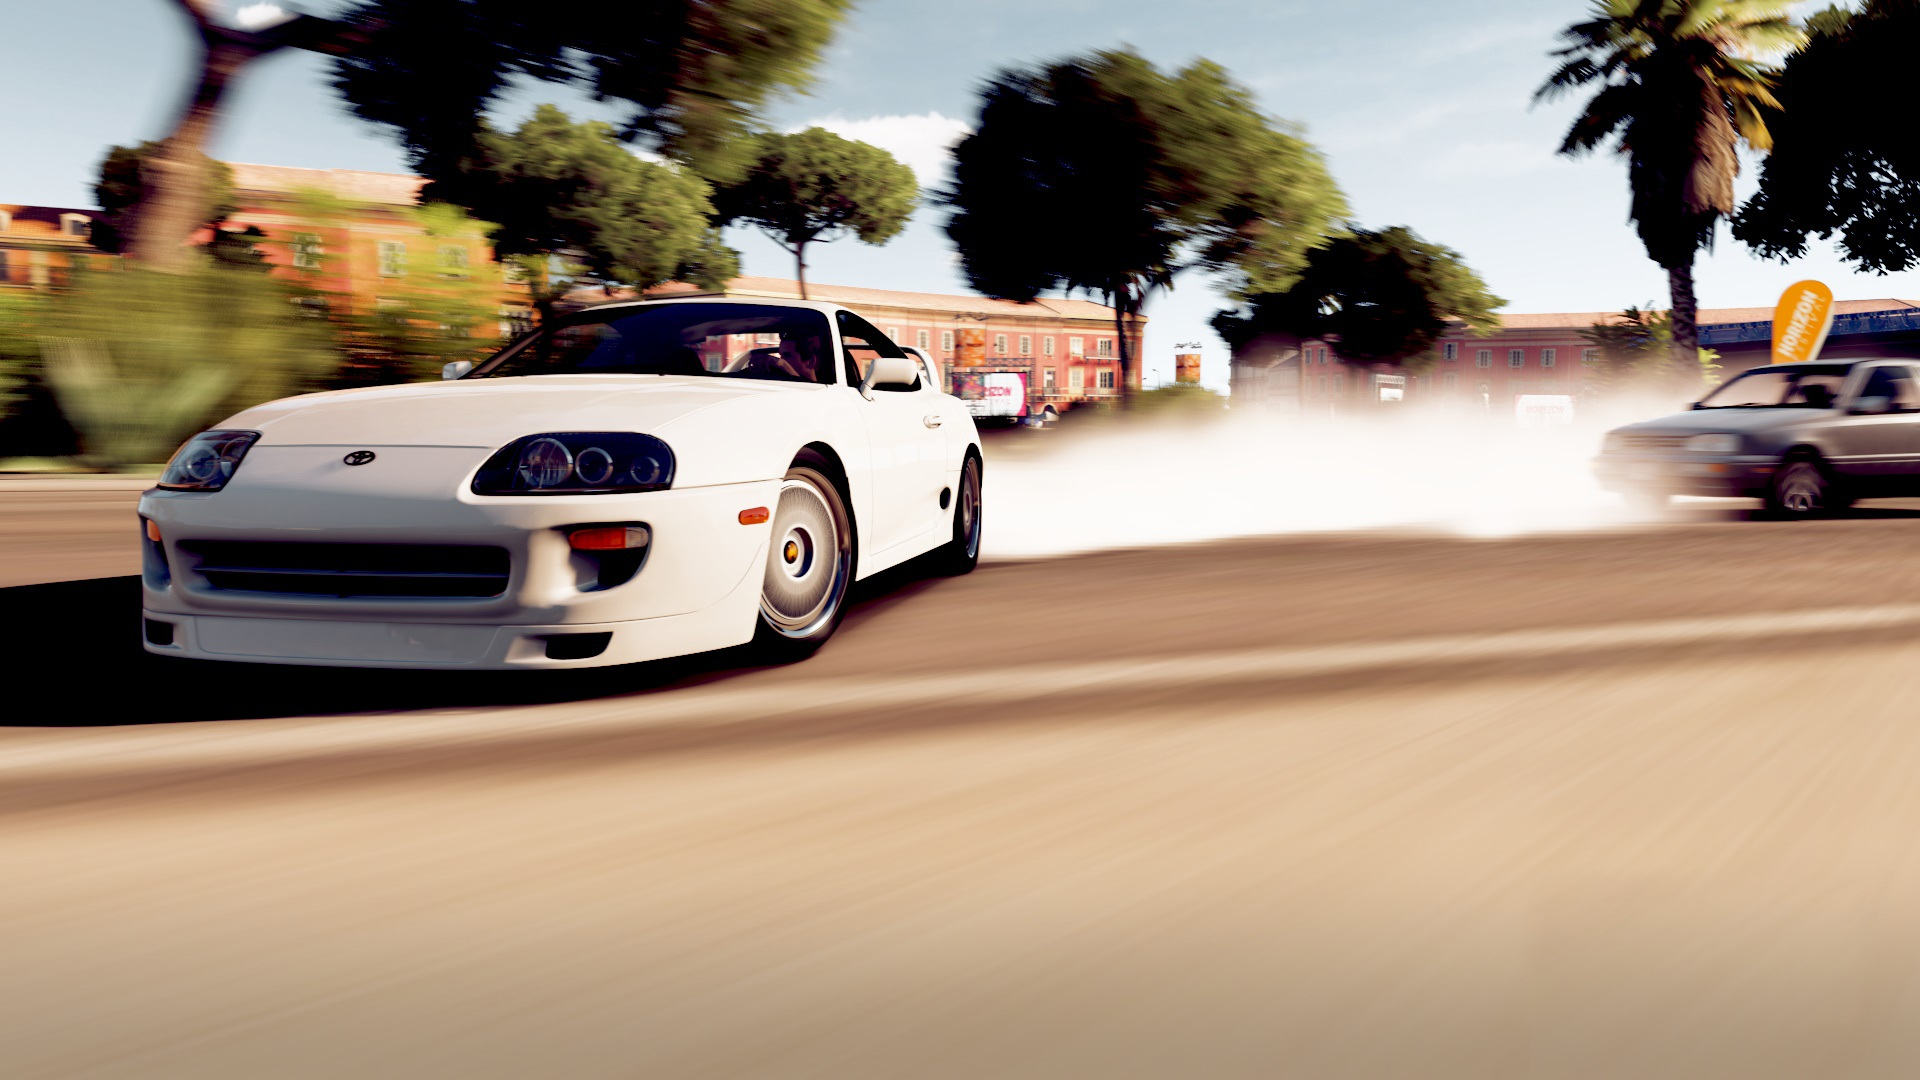 Forza Horizon 5 Takes Place In Mexico And Will Release In November